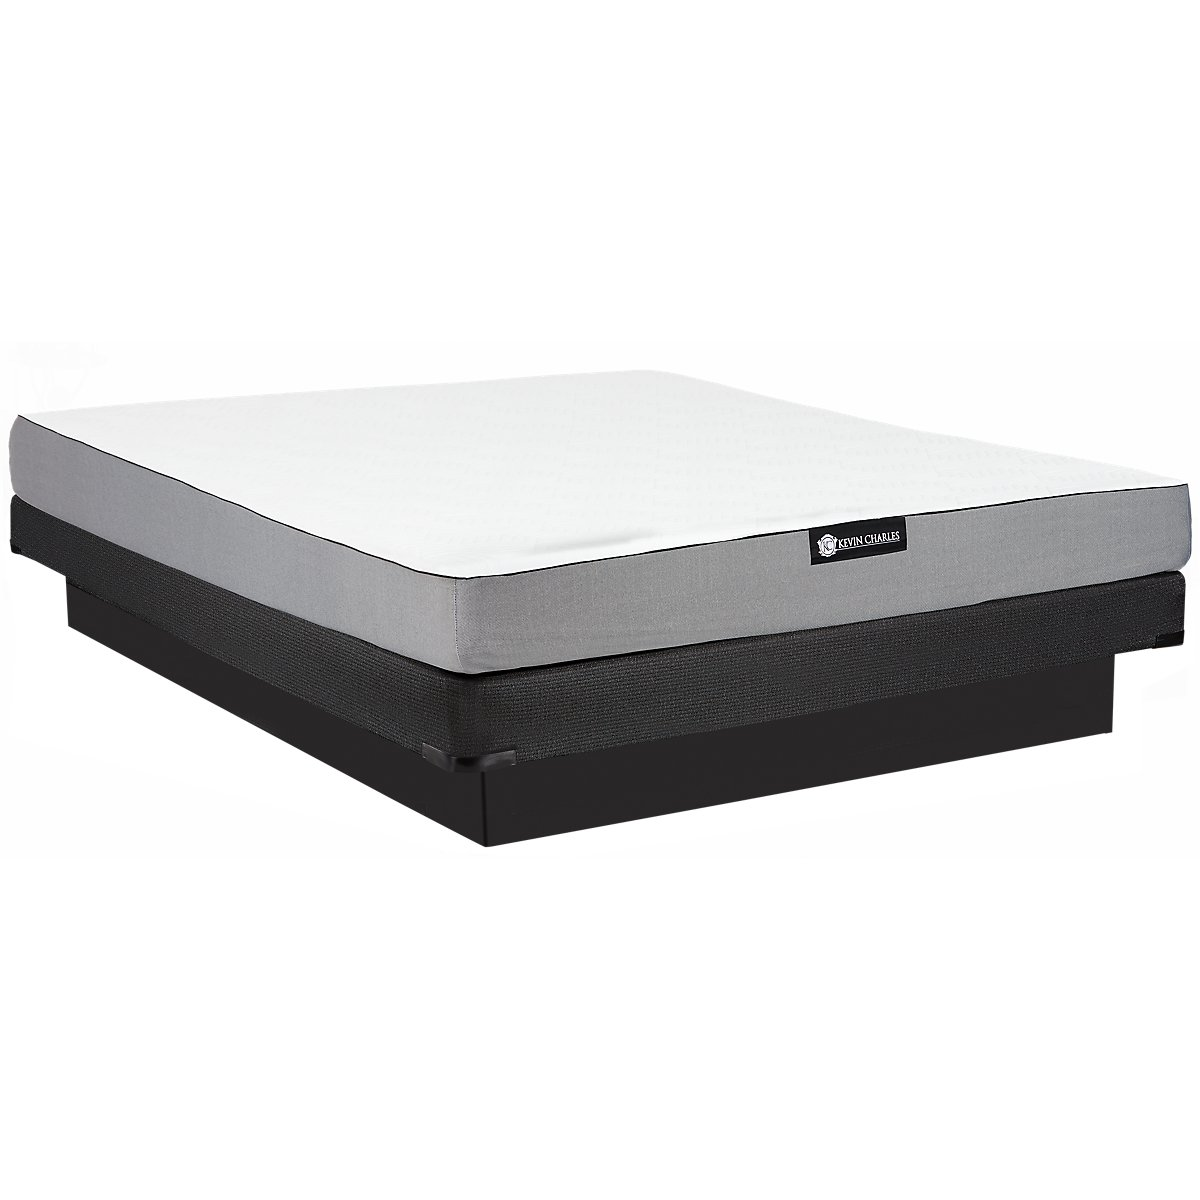 City furniture slumber firm memory foam low profile mattress set Memory foam mattress set